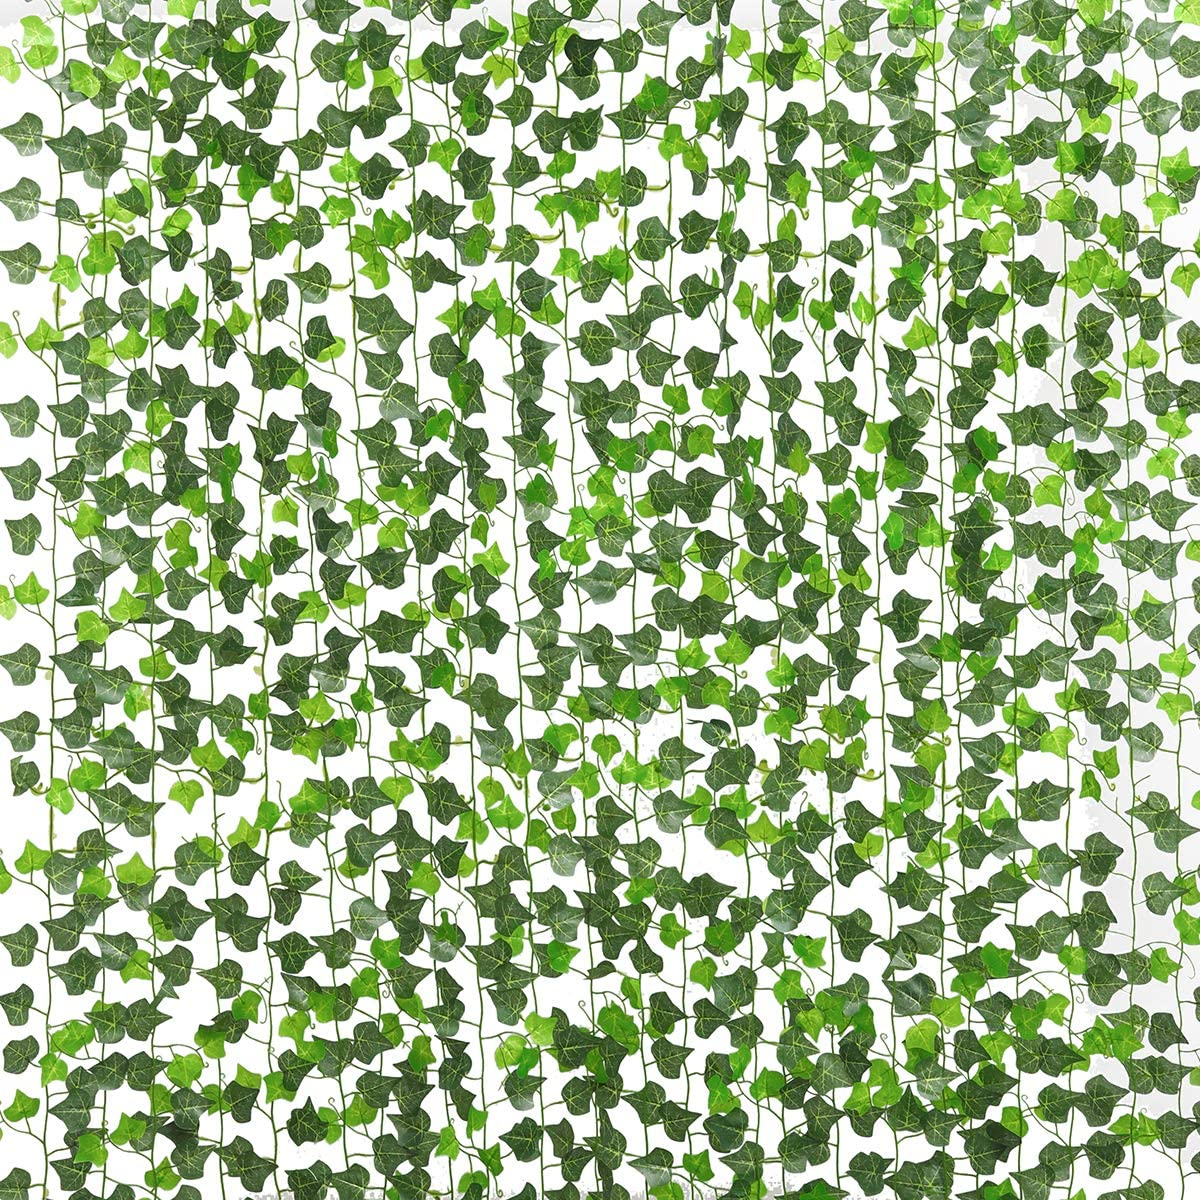 PARTY JOY 12 Strands Artificial Ivy Leaf Plants Vine Hanging Garland Fake Foliage Flowers Home Kitchen Garden Office Wedding Wall Decor, 84 Feet (100pcs Leaves Ivy Garland)